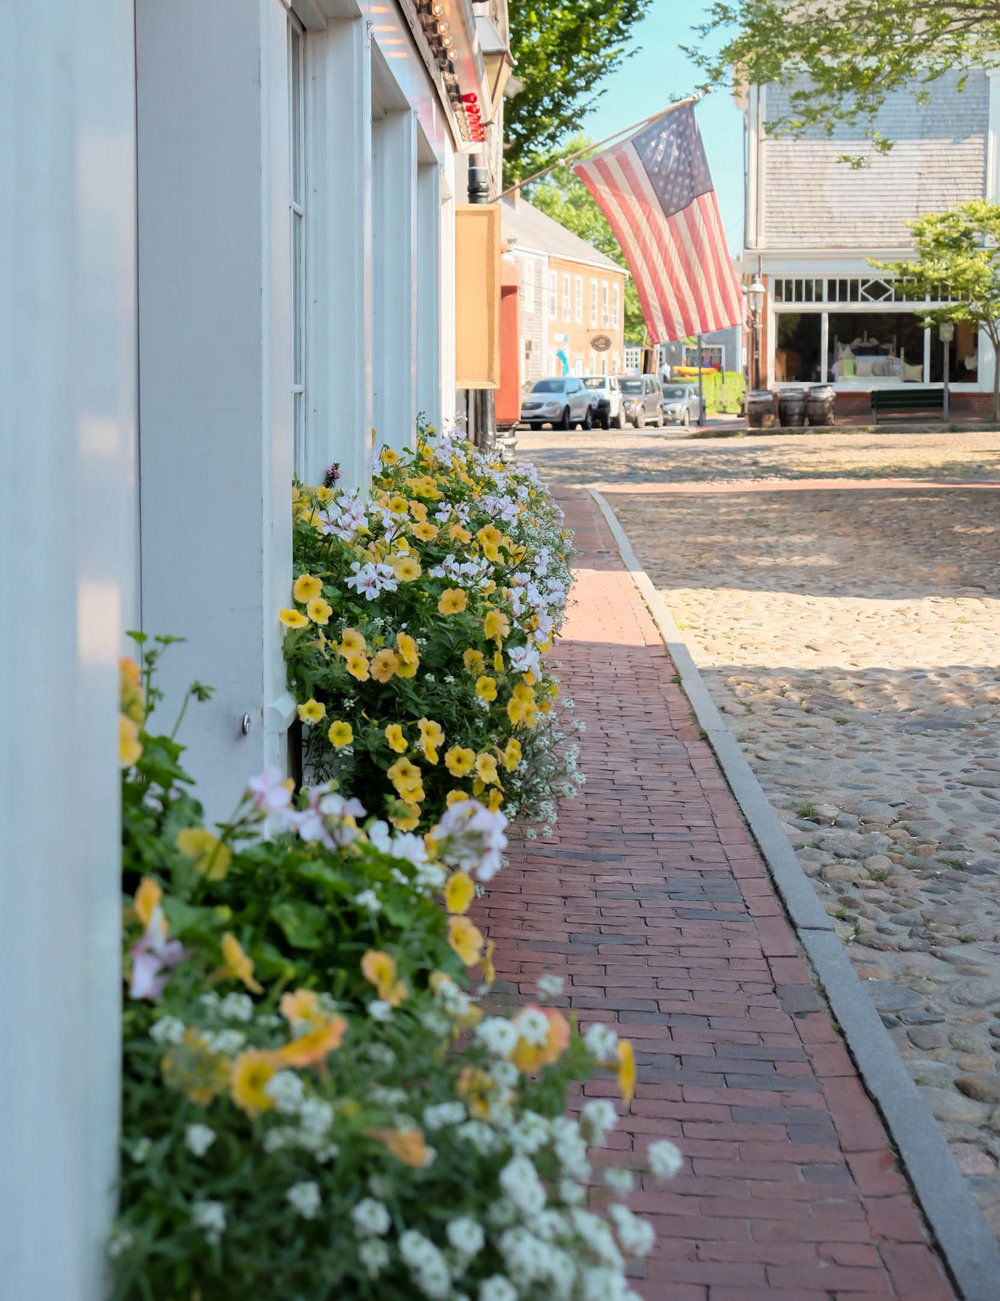 nantucket-flower-boxes-laurenschwaiger-travel-blog.jpg